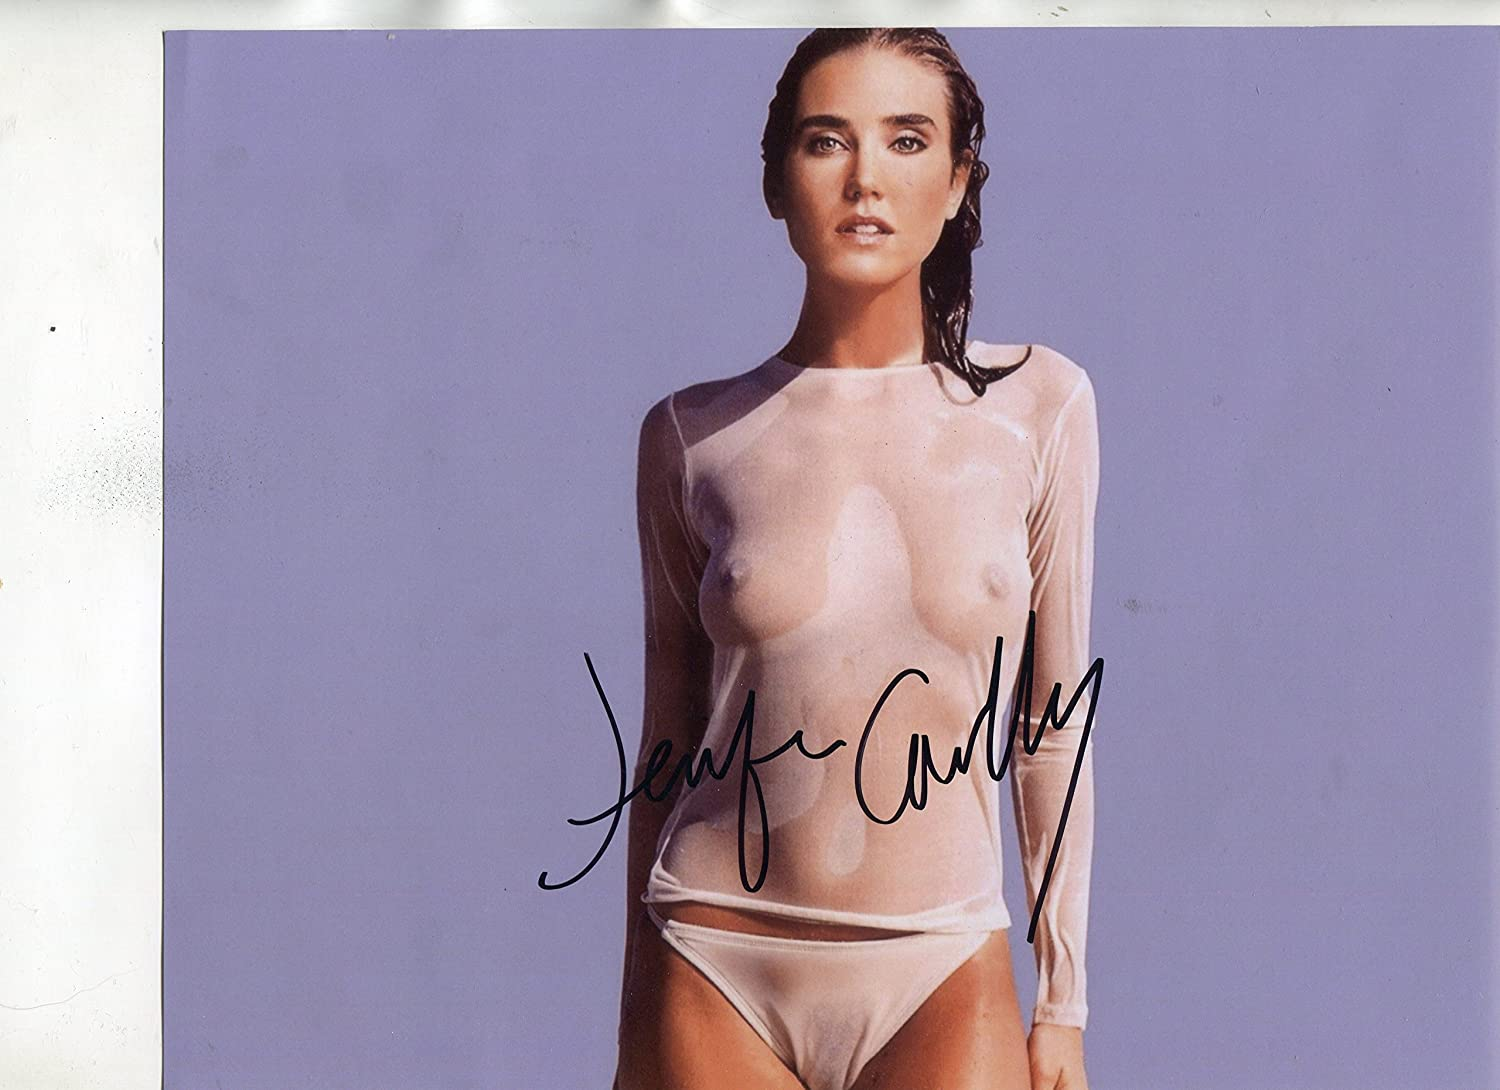 Jennifer connelly hot photos